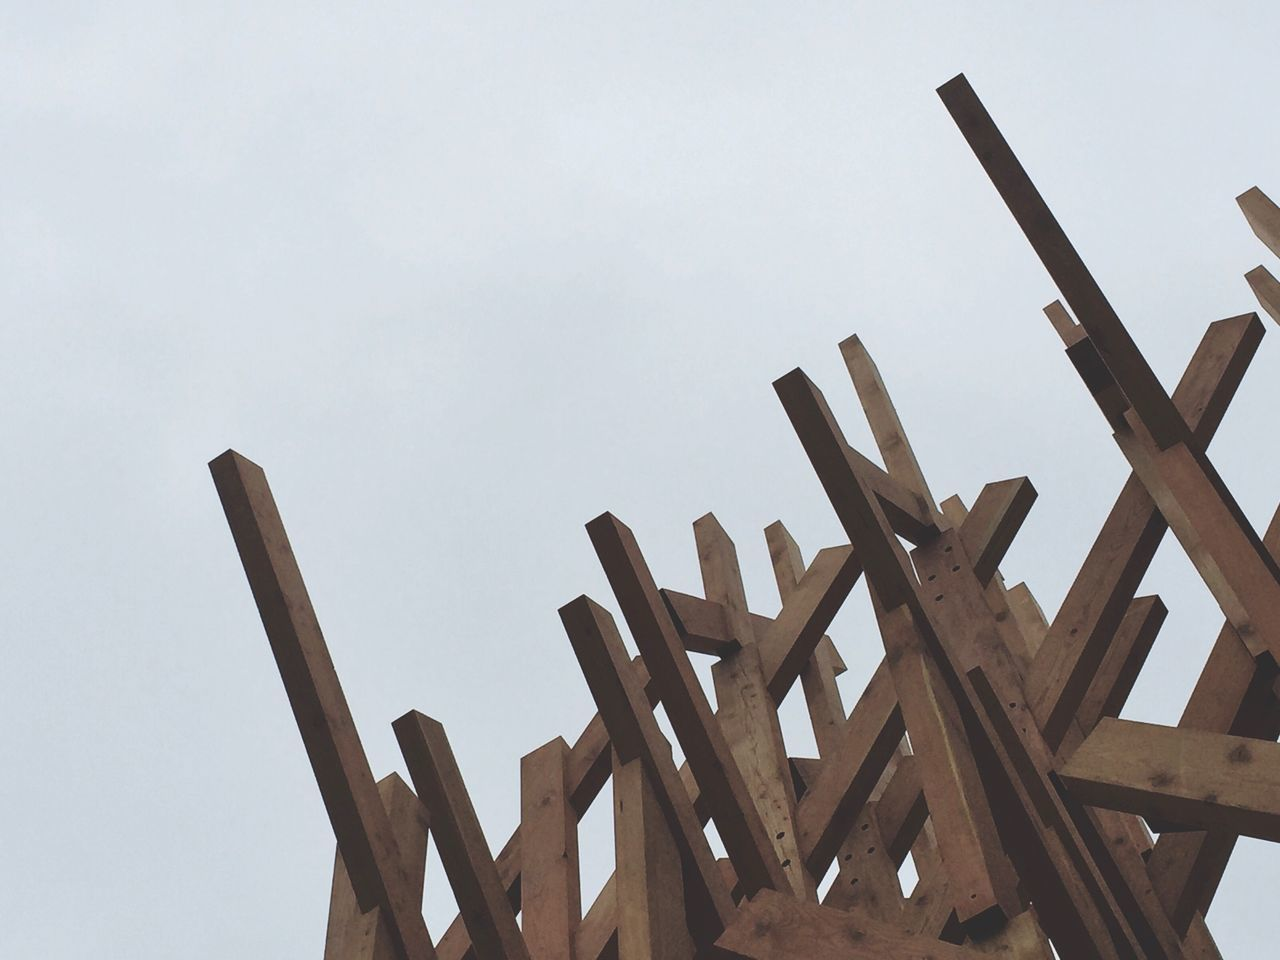 Low Angle View Of Wooden Logs Against Clear Sky